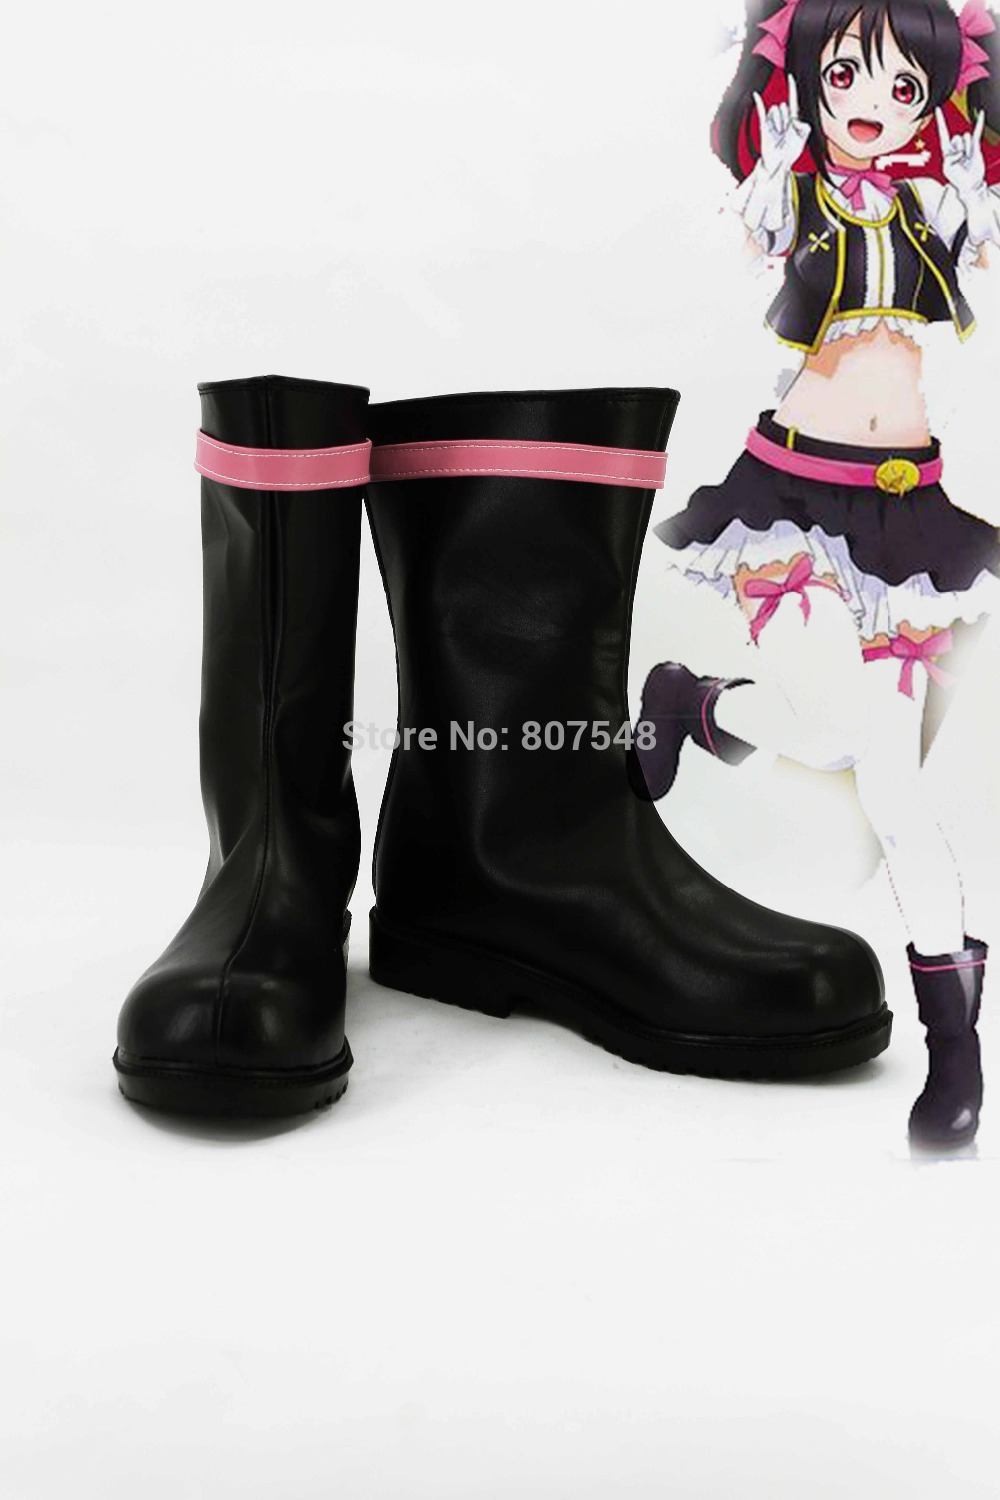 New Arrival Anime LOVELIVE Cosplay Women Boots Girls Shoes Custom Mid Calf  Boots Free Shipping